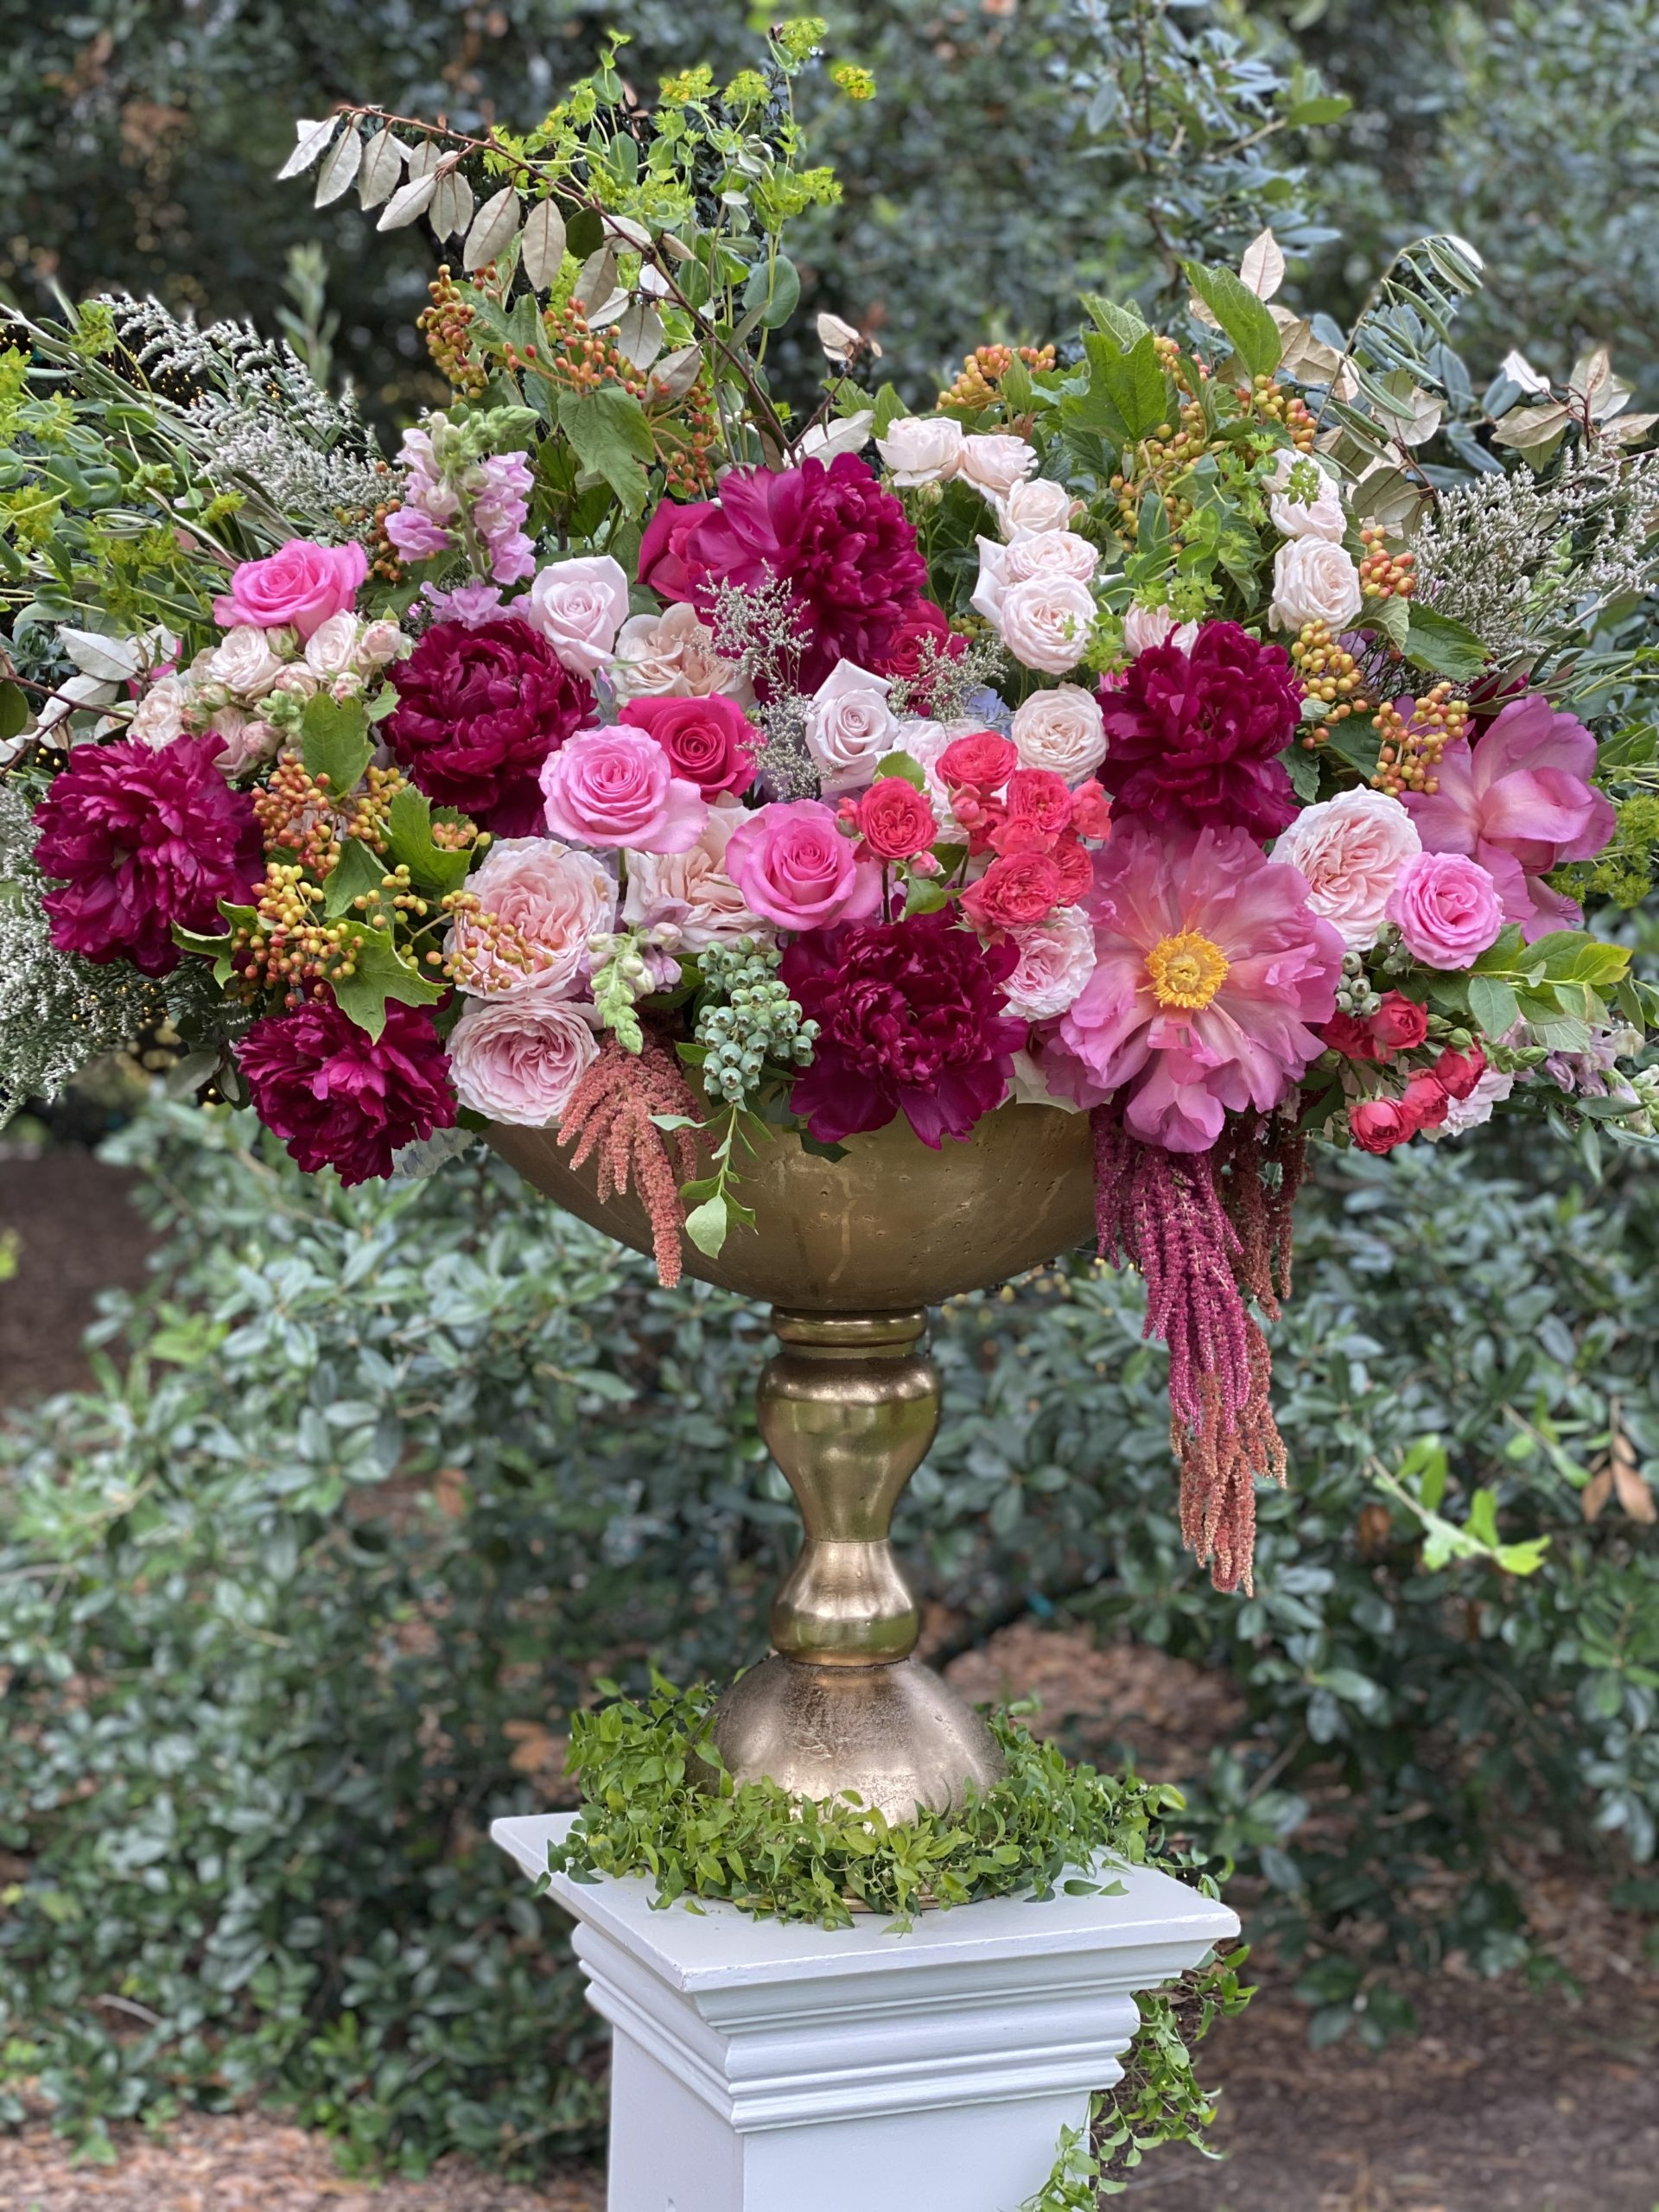 Flowers for an outdoor wedding at The Houstonian are created by Sage 'n' Bloom at The Houstonian. (Courtesy photo)